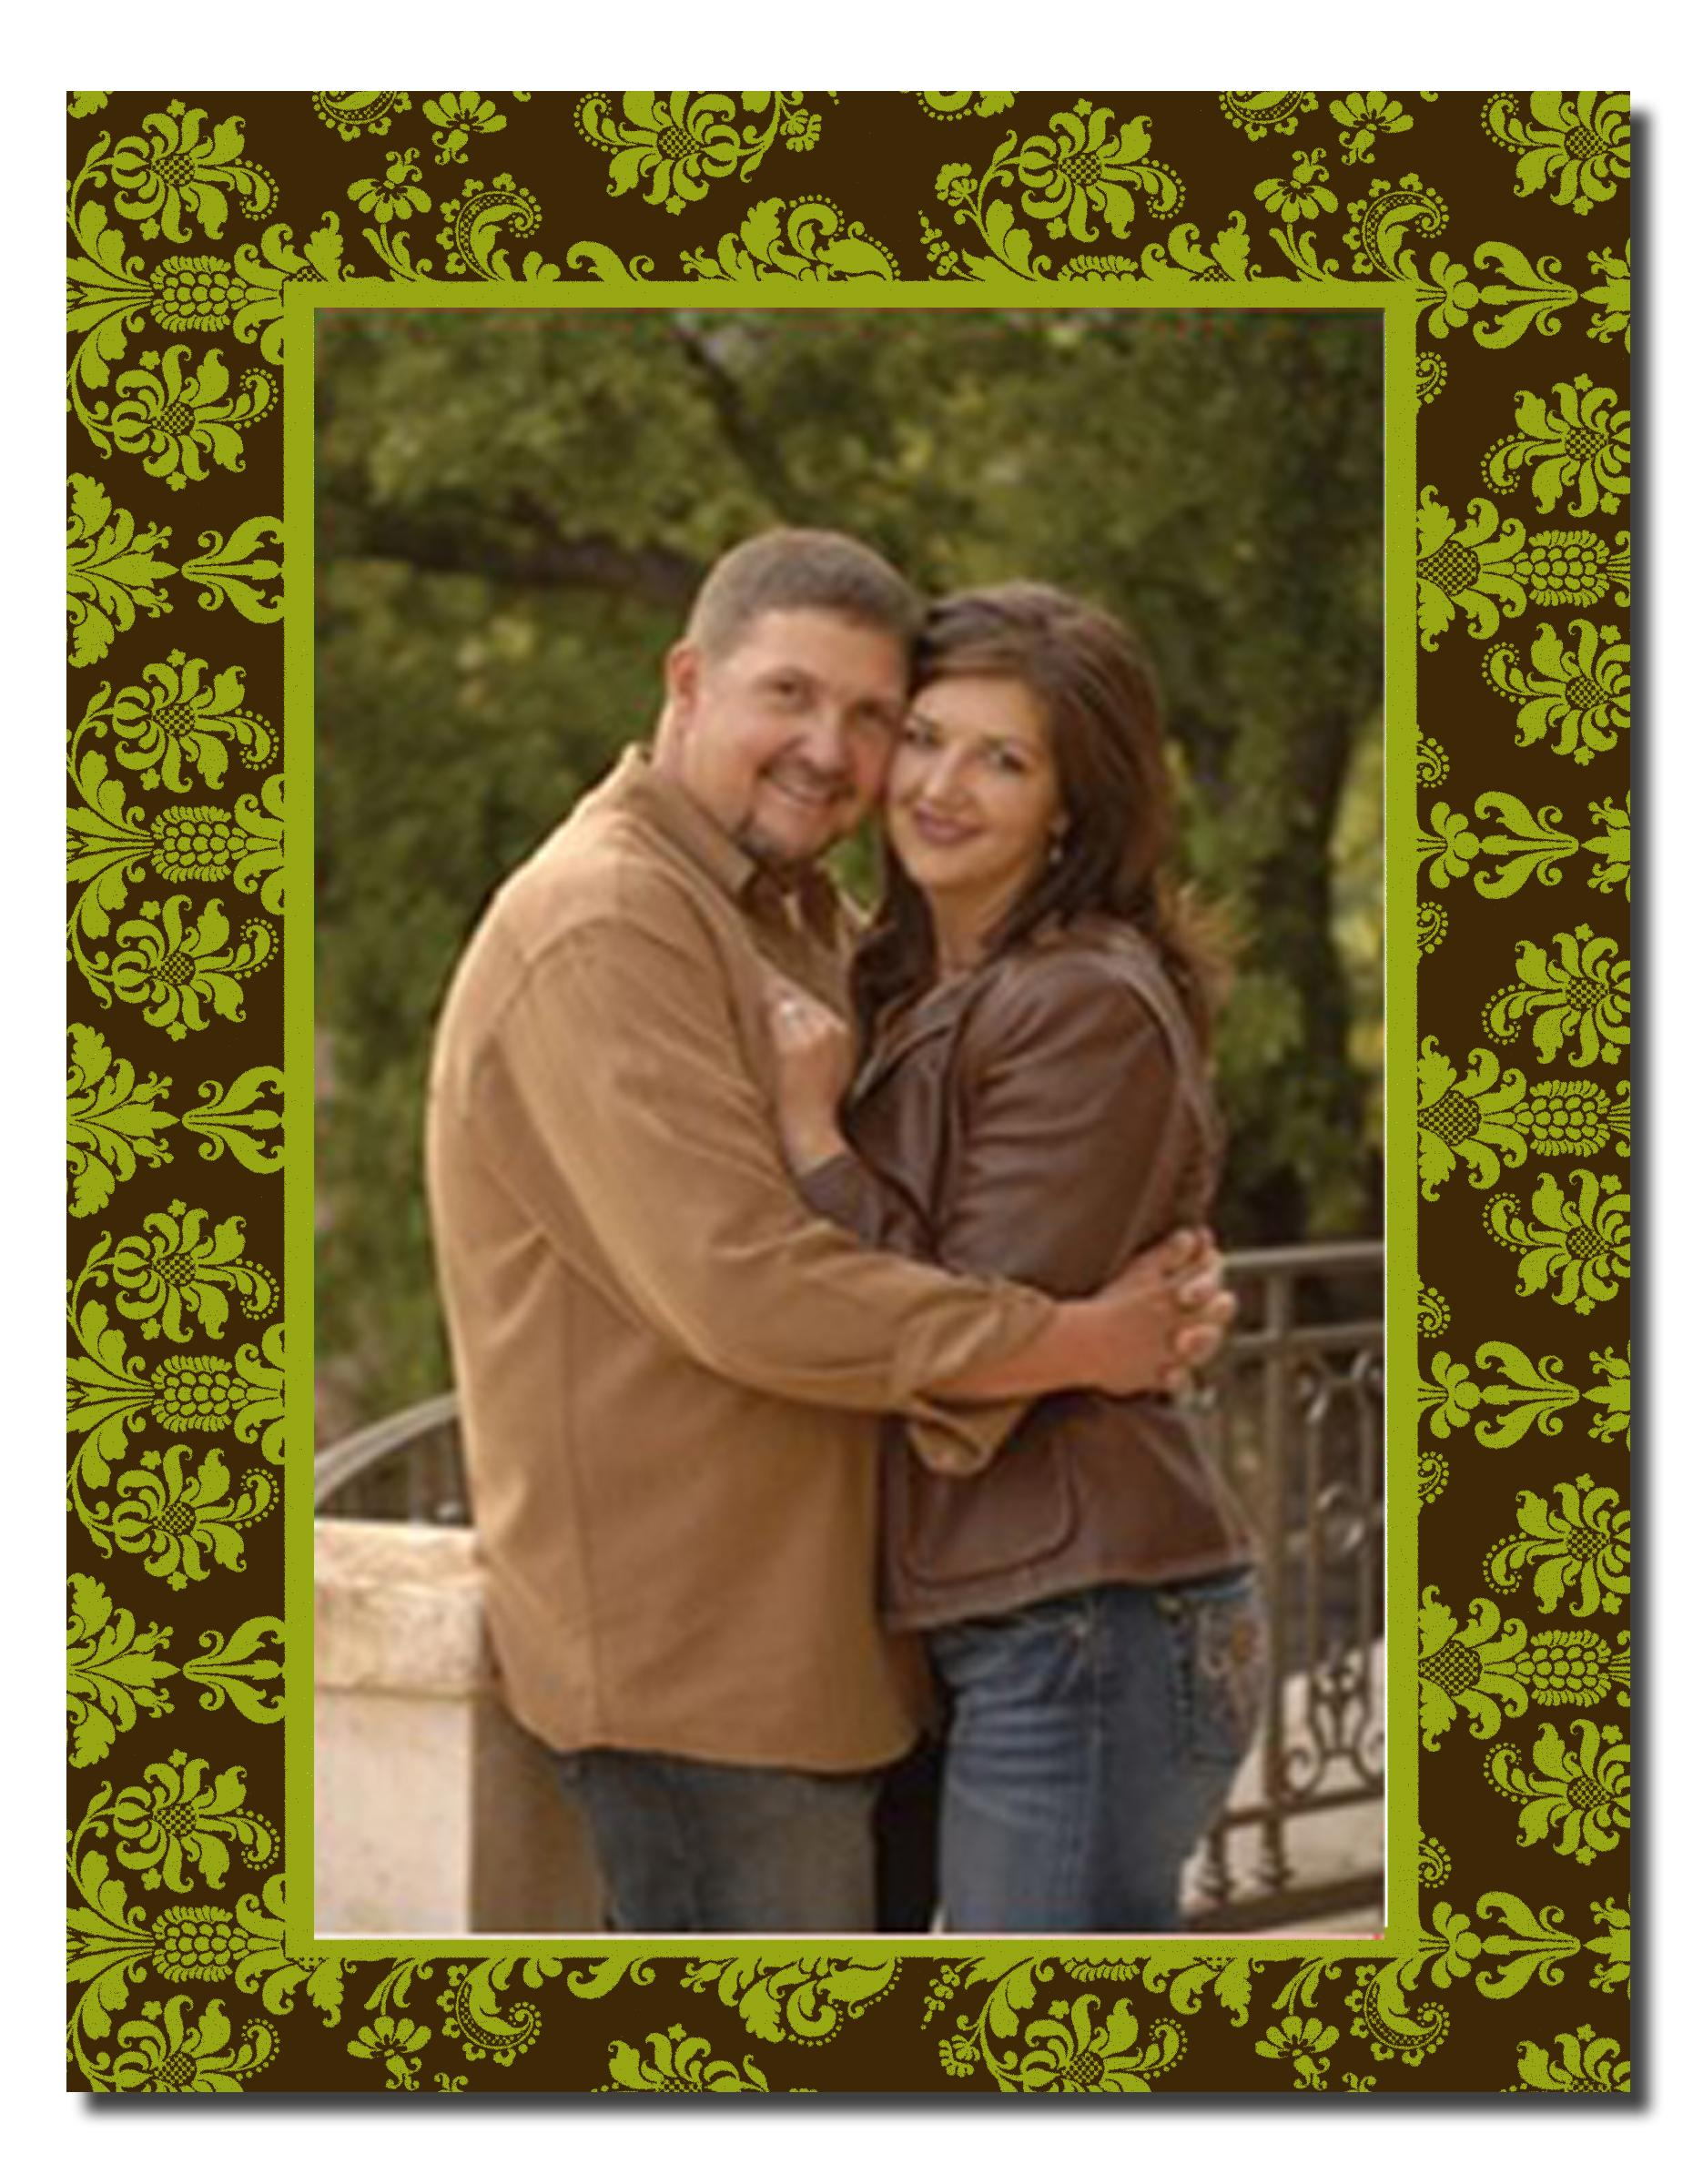 "Damask Green /Brown Photo Cards -  ON SALE!  70 AVAILABLE! This traditional foldover greeting card is a beautiful way to send your photo to friends and fmaily this season!  Attach your photo to max size 4"" x 6"" to front of photo card. Card is blank inside for imprinting of any personalized text you specify.Card includes white envelope.If ordering personalized, be sure to specify whether your photo is HORIZONTAL OR VERTICAL in the comment section of the order form."